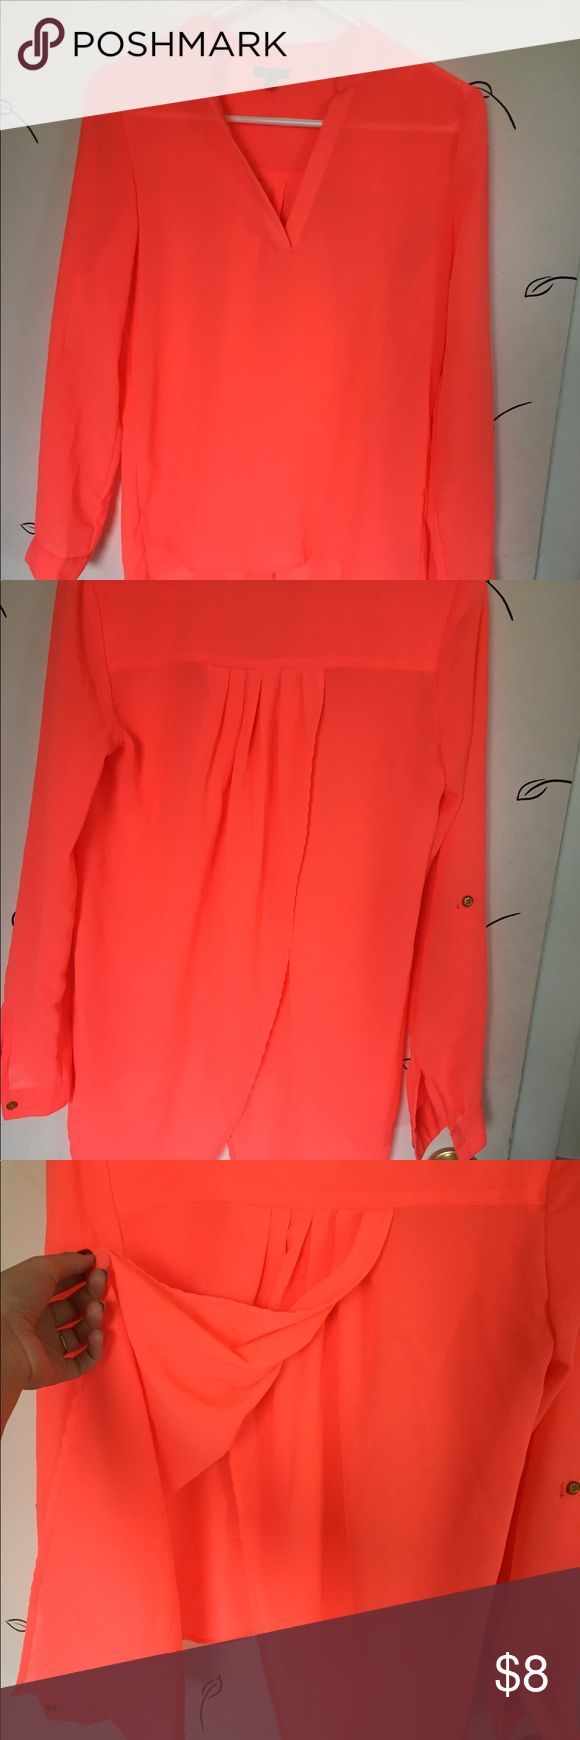 Flowy Bright Coral Blouse This blouse is a lightweight material, so a camisole underneath would be recommended. It has an open-back design, so the fabric flows open on the back. Sleeves can be worn down, or rolled up, as pictured. Pairs great with a black pencil skirt, black leggings, jeans, or shorts. Charlotte Russe Tops Blouses